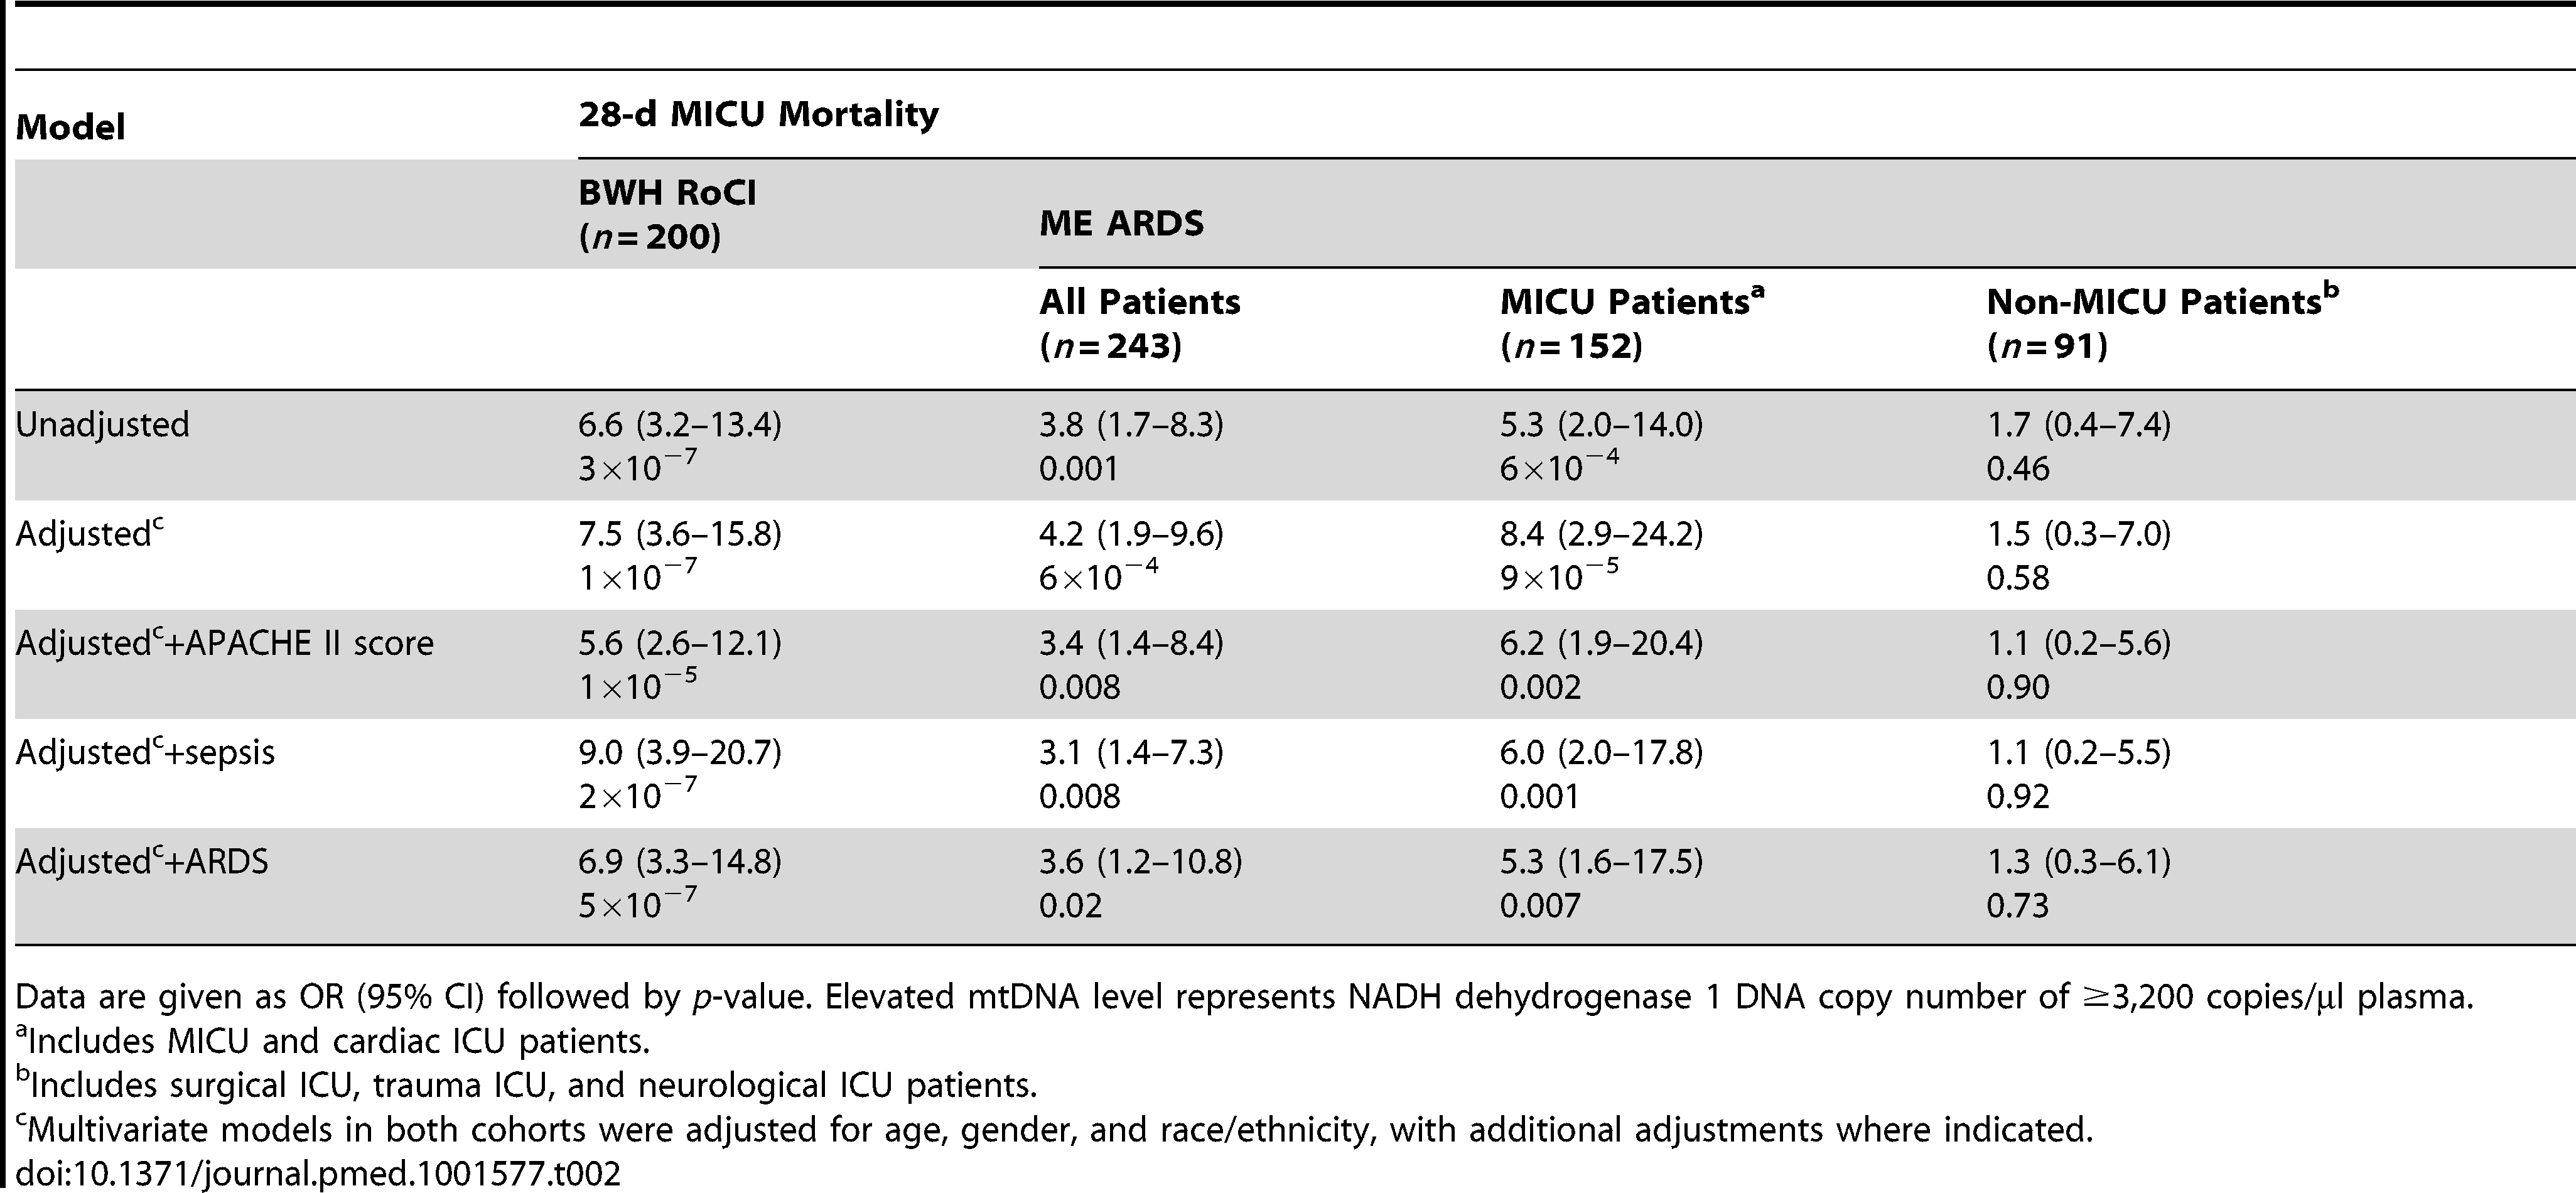 Bivariate and multivariate analyses of association between elevated mtDNA levels and 28-d MICU mortality.